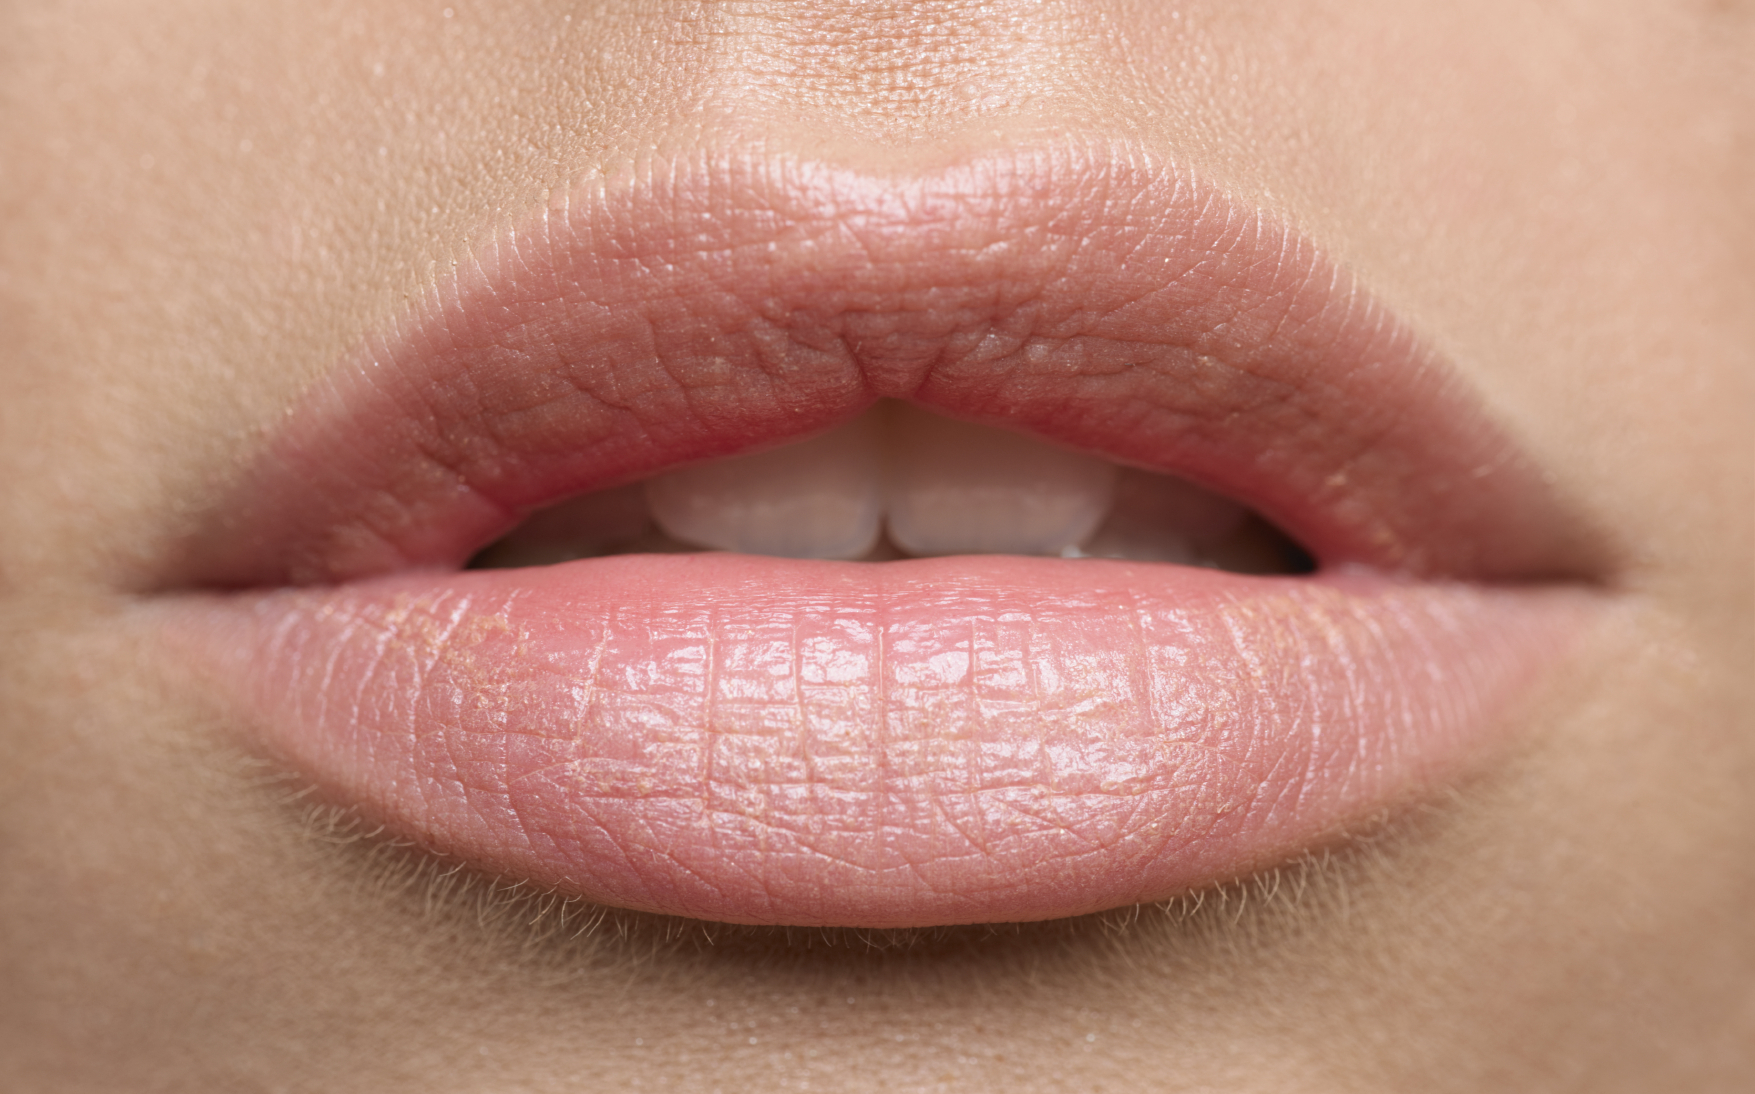 Lips for Life – Lip implants